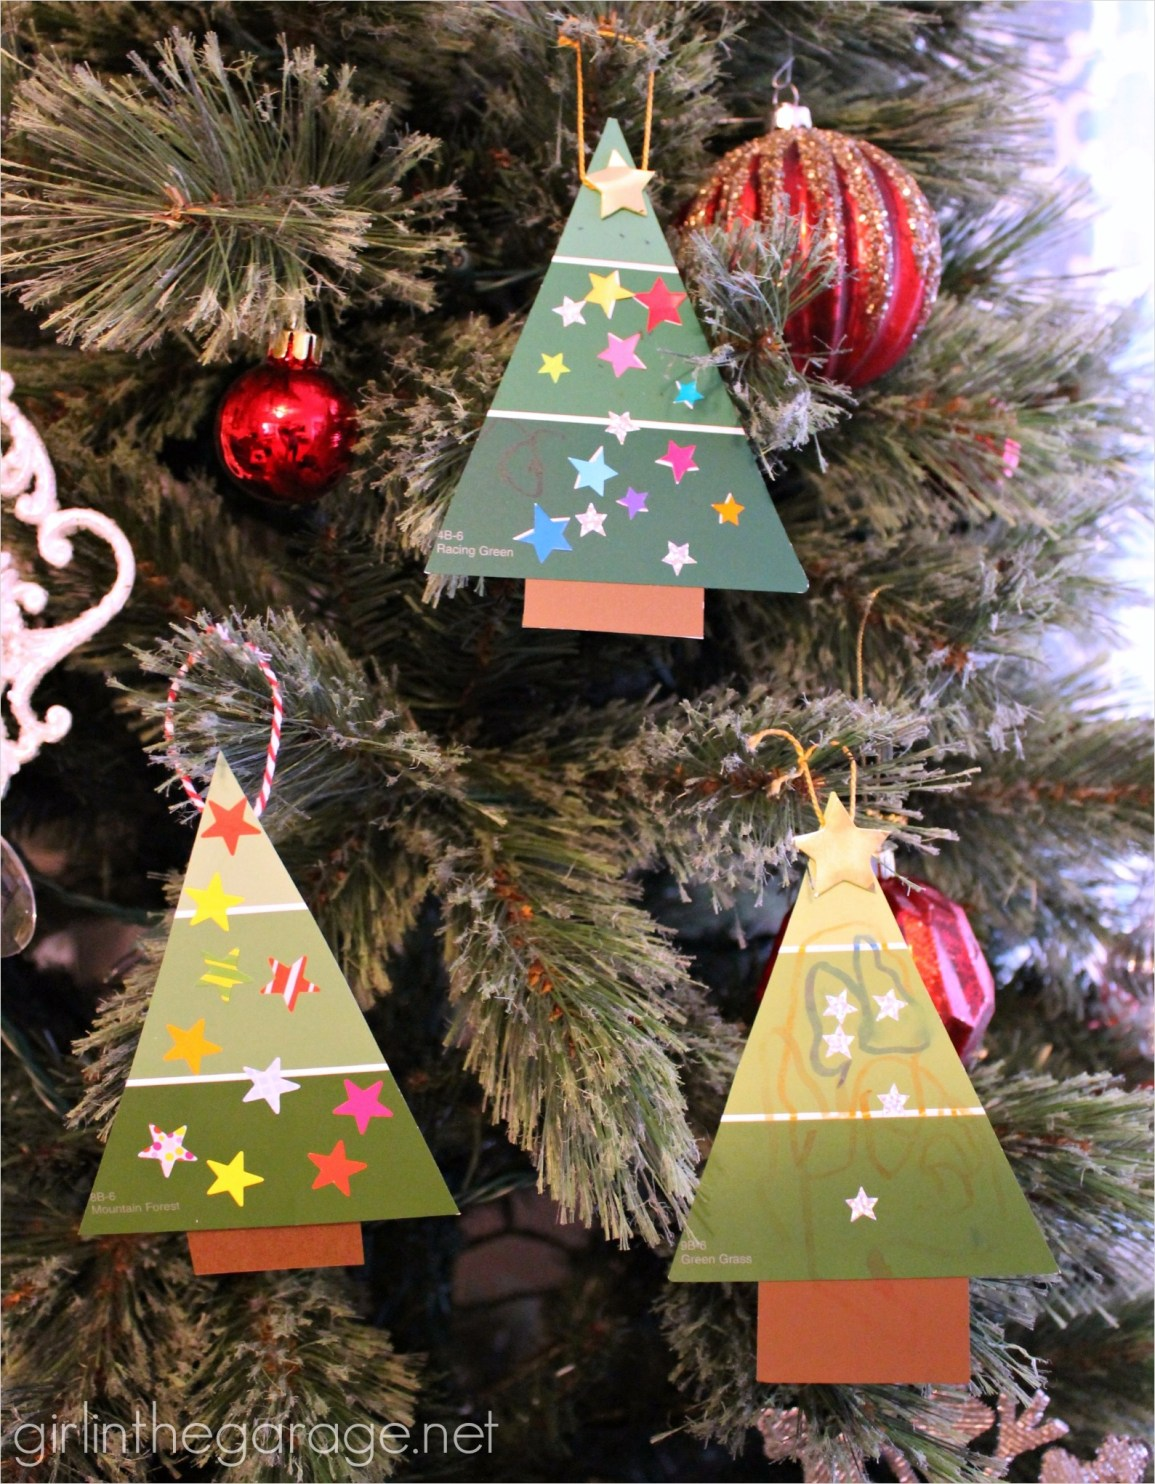 40 Diy Easy Christmas ornament Crafts Ideas 76 Easy Paint Chip Christmas Tree ornament 3